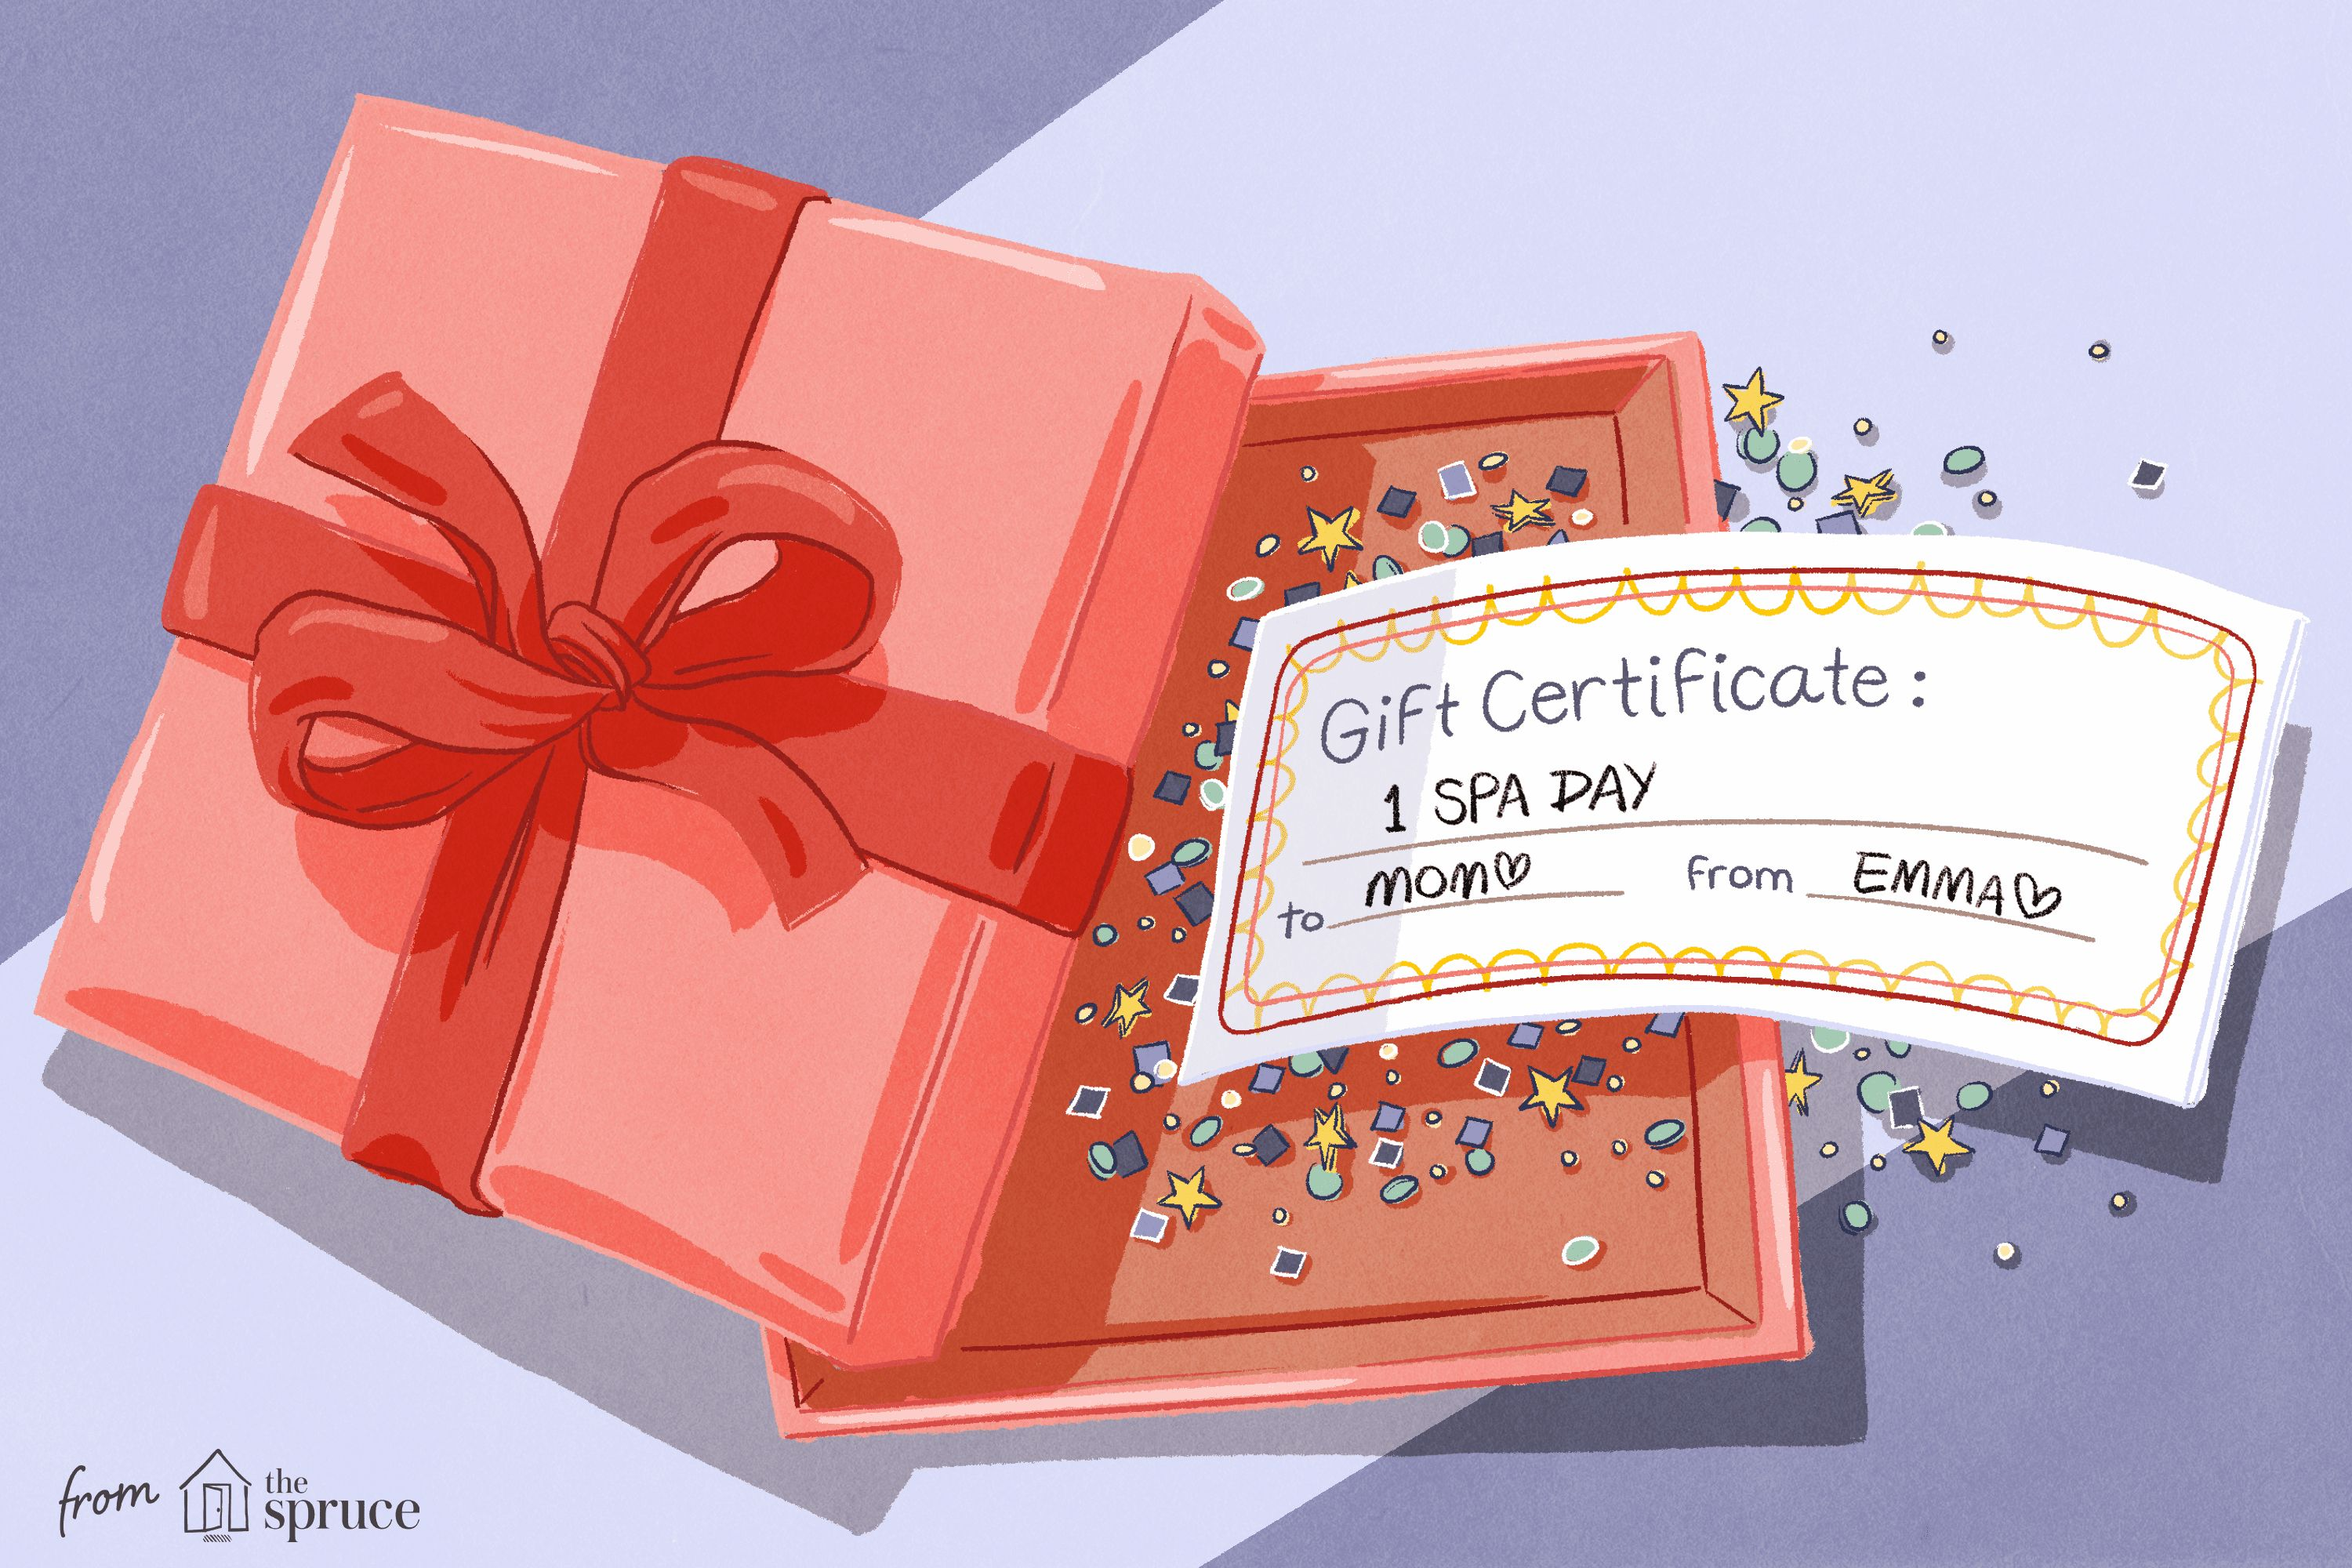 Free gift certificate templates you can customize inside